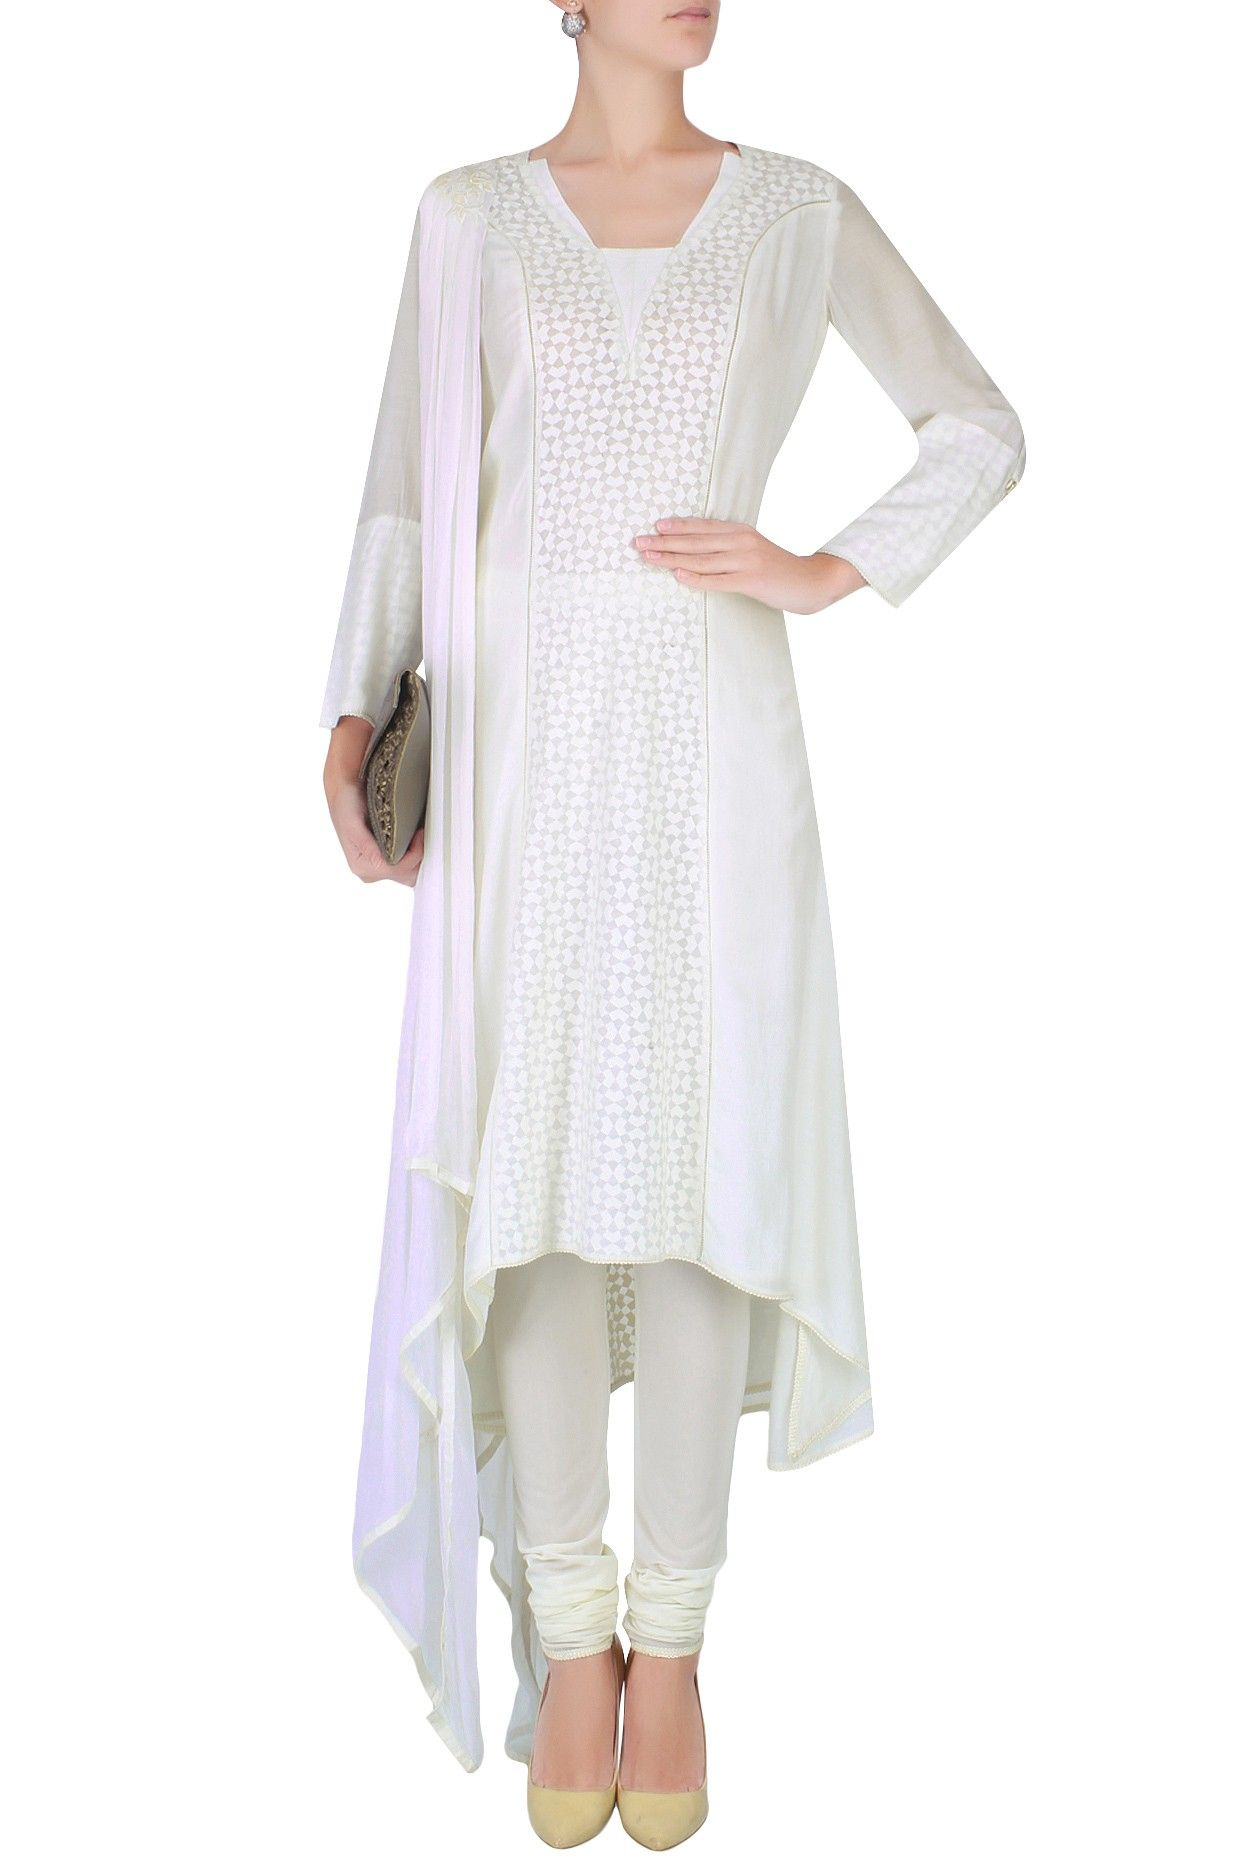 Ivory floral applique work kurta set with attached draped dupatta available only at Pernia's Pop Up Shop.